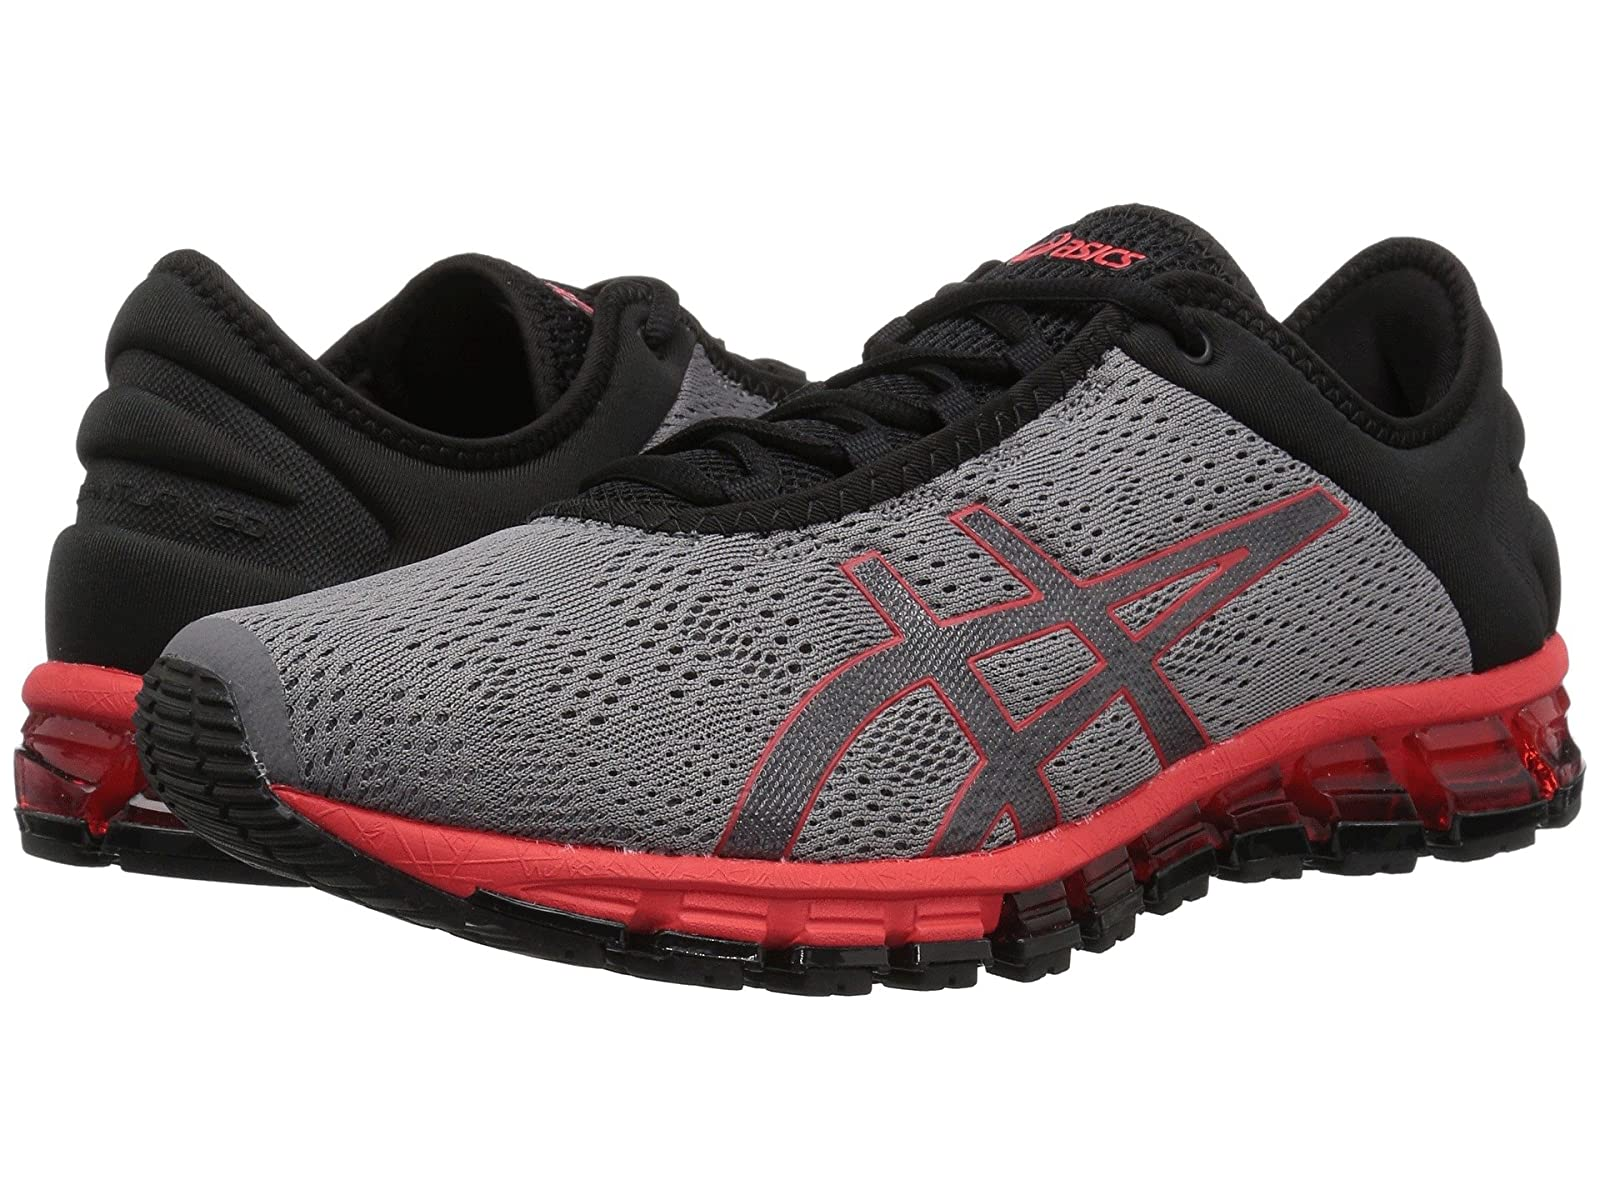 ASICS GEL-Quantum 180 3Atmospheric grades have affordable shoes